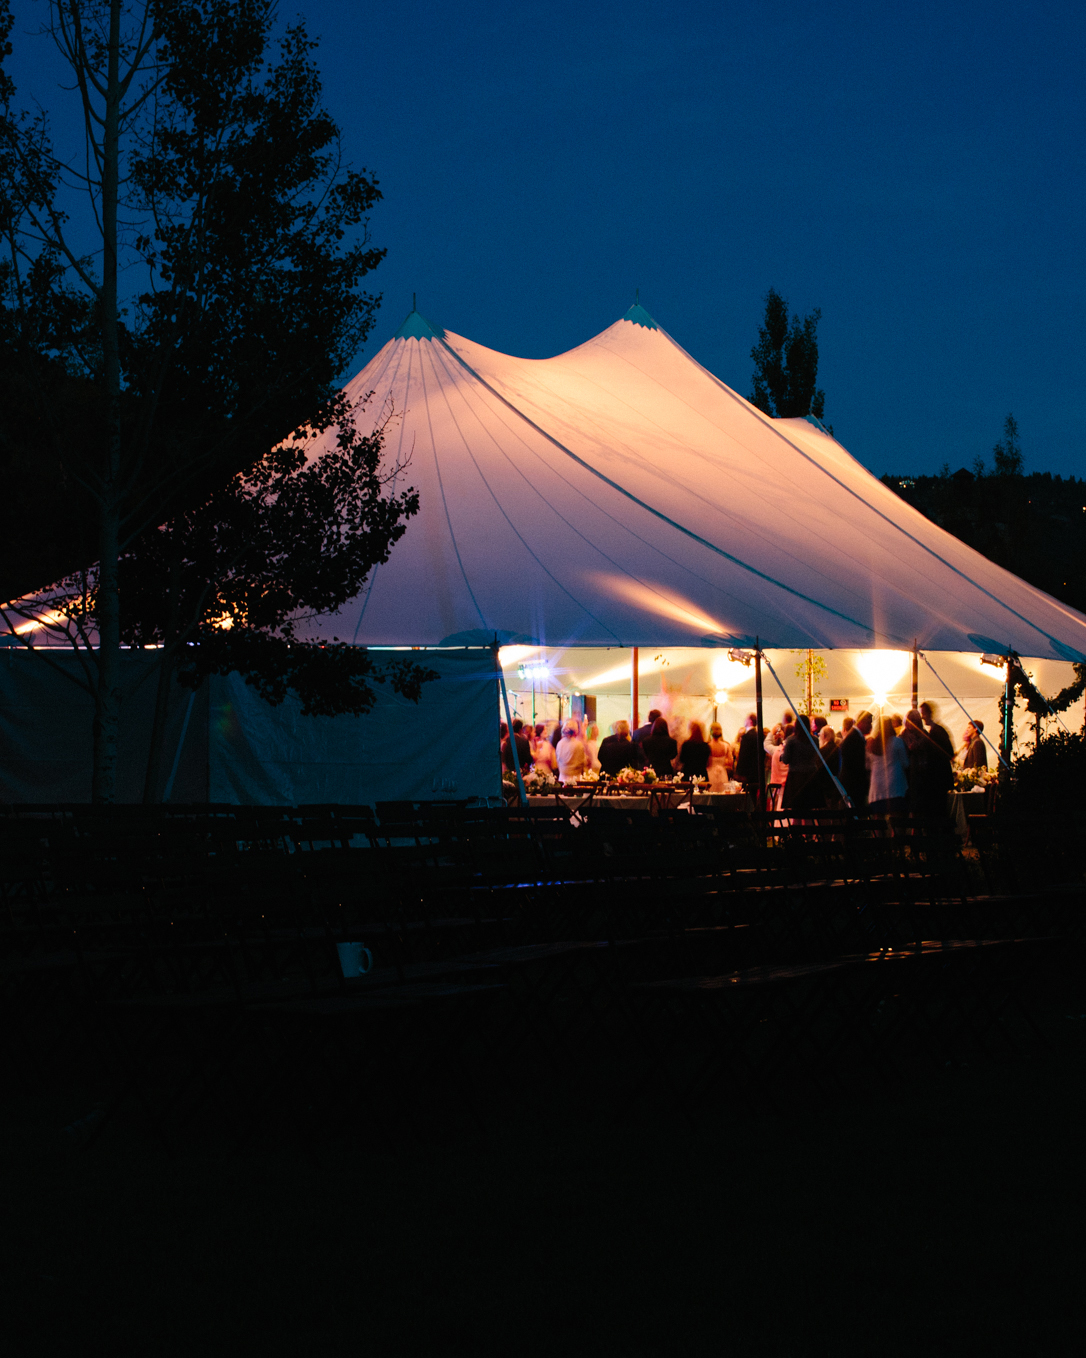 jamie-alex-wedding-tent-294-s111544-1014.jpg